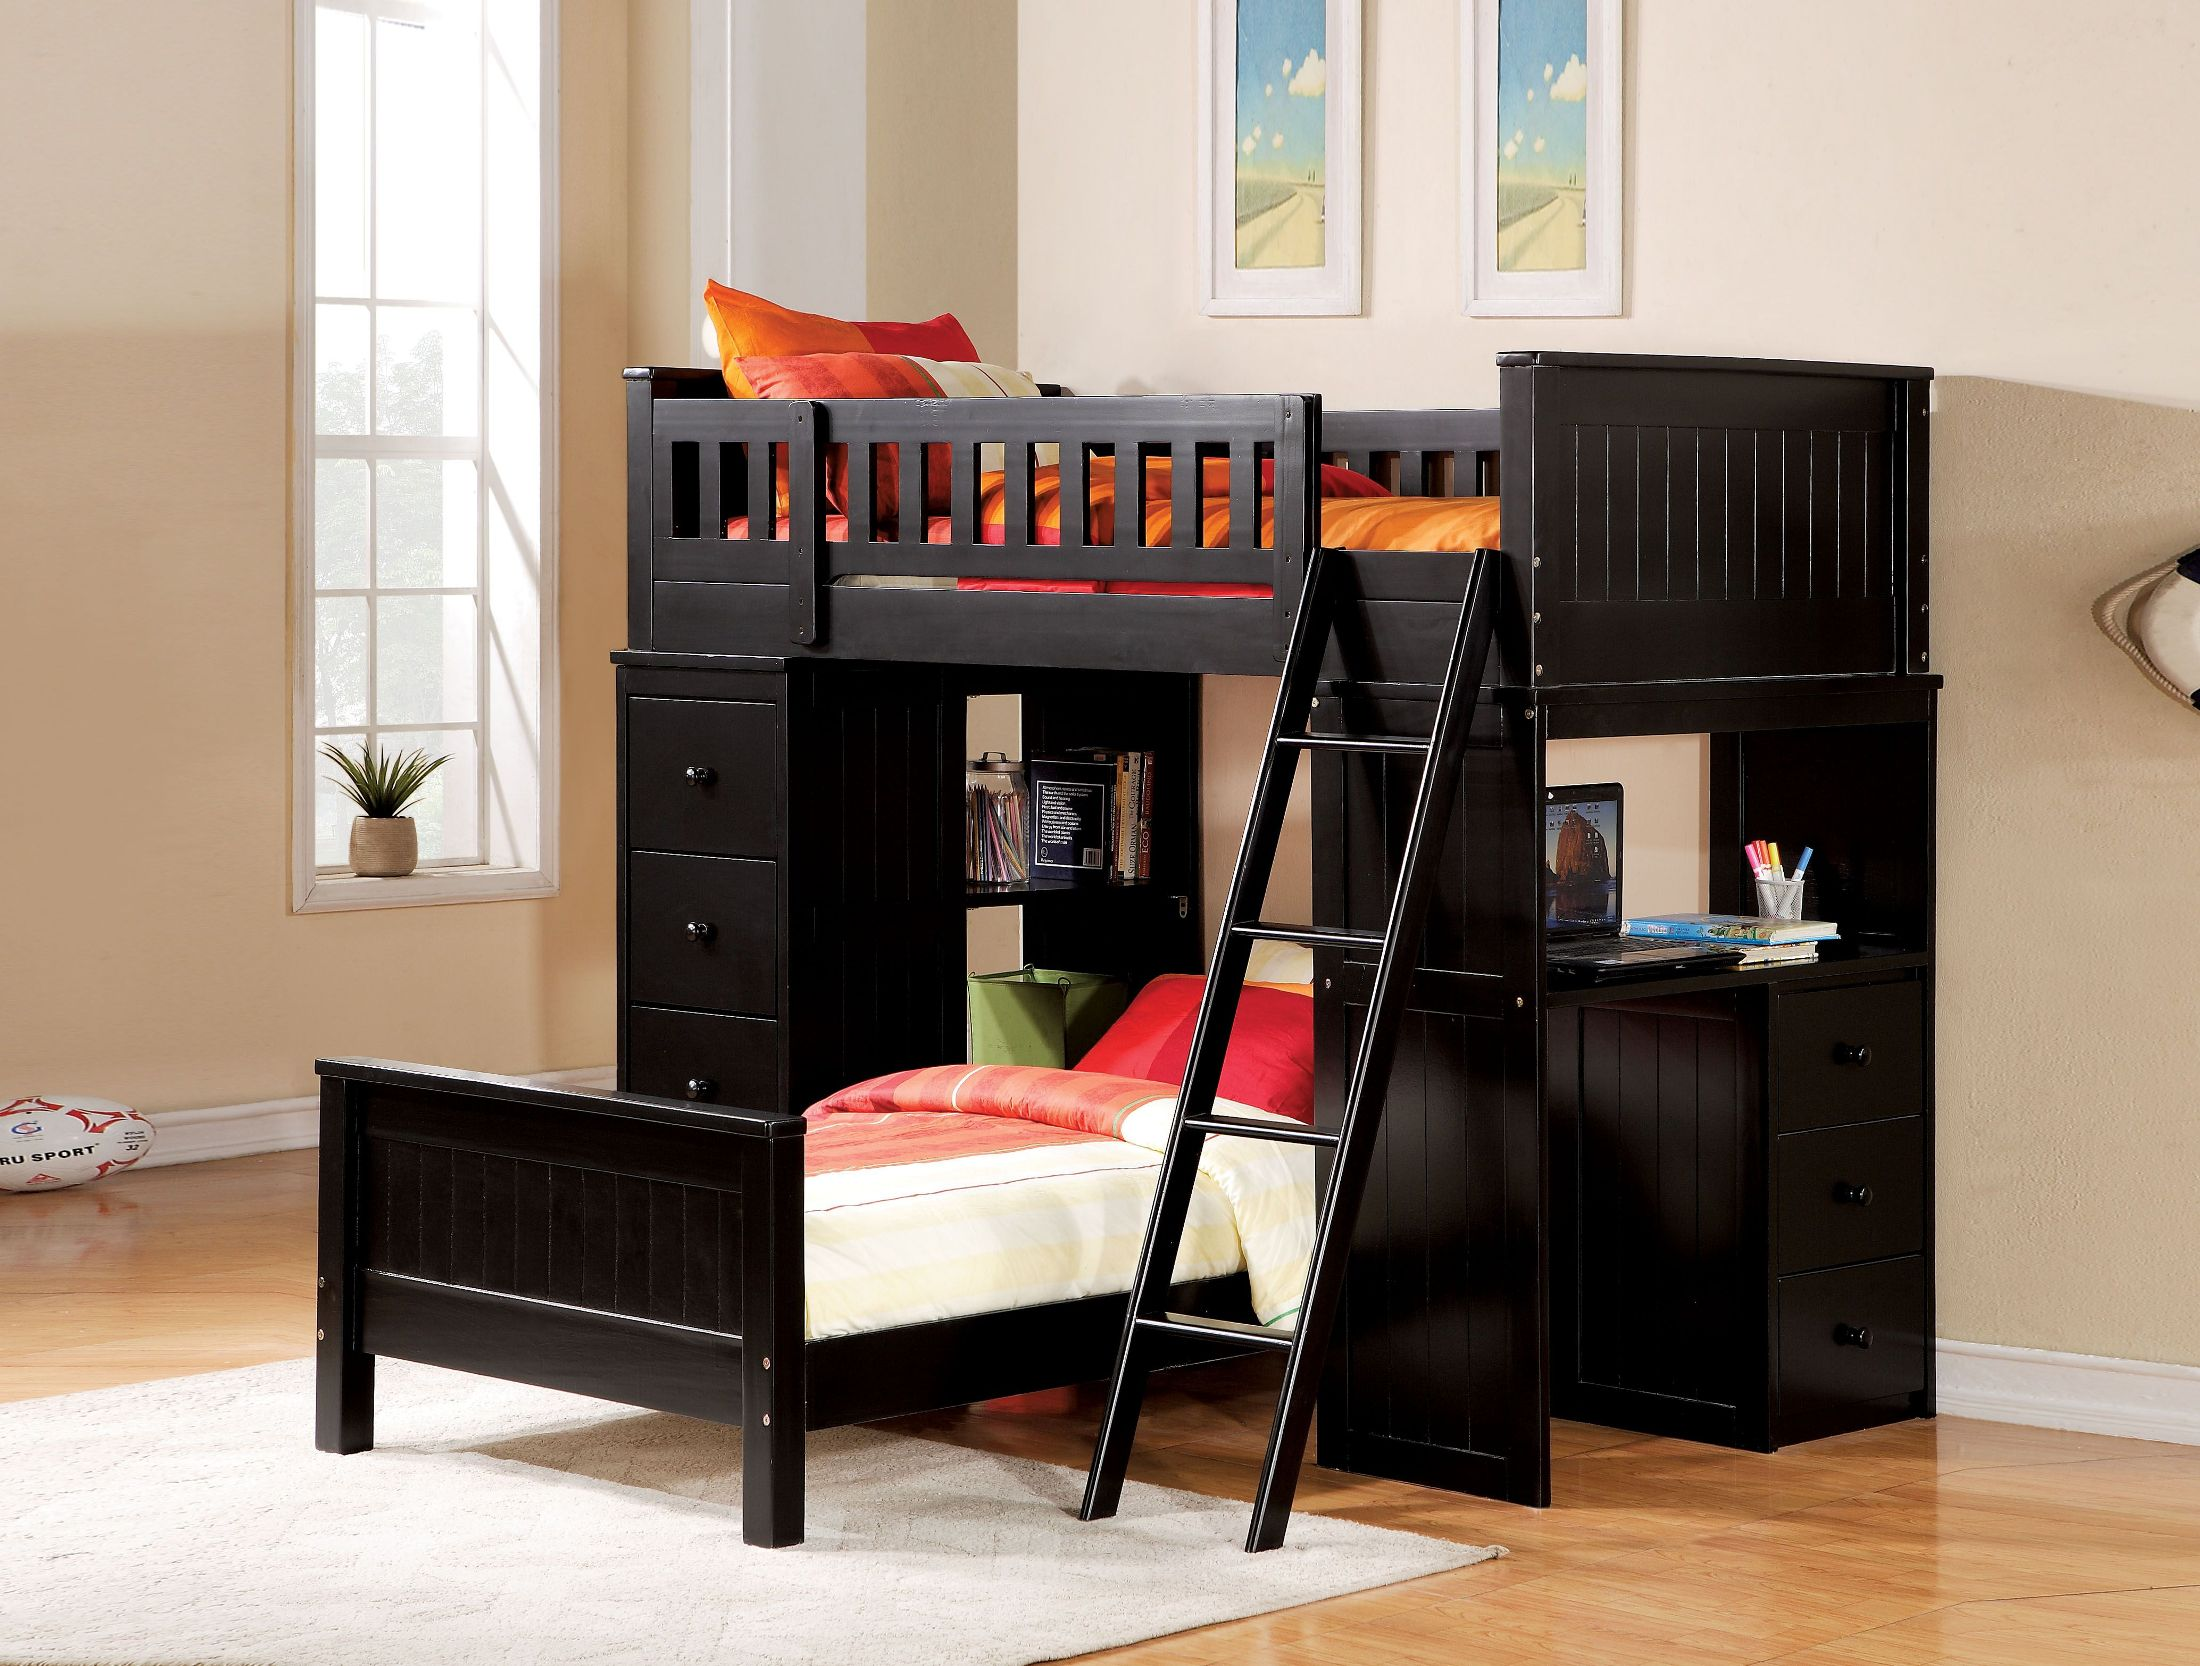 Black Loft Bed Acme Willoughby Black Loft Bed Willoughby Collection 5